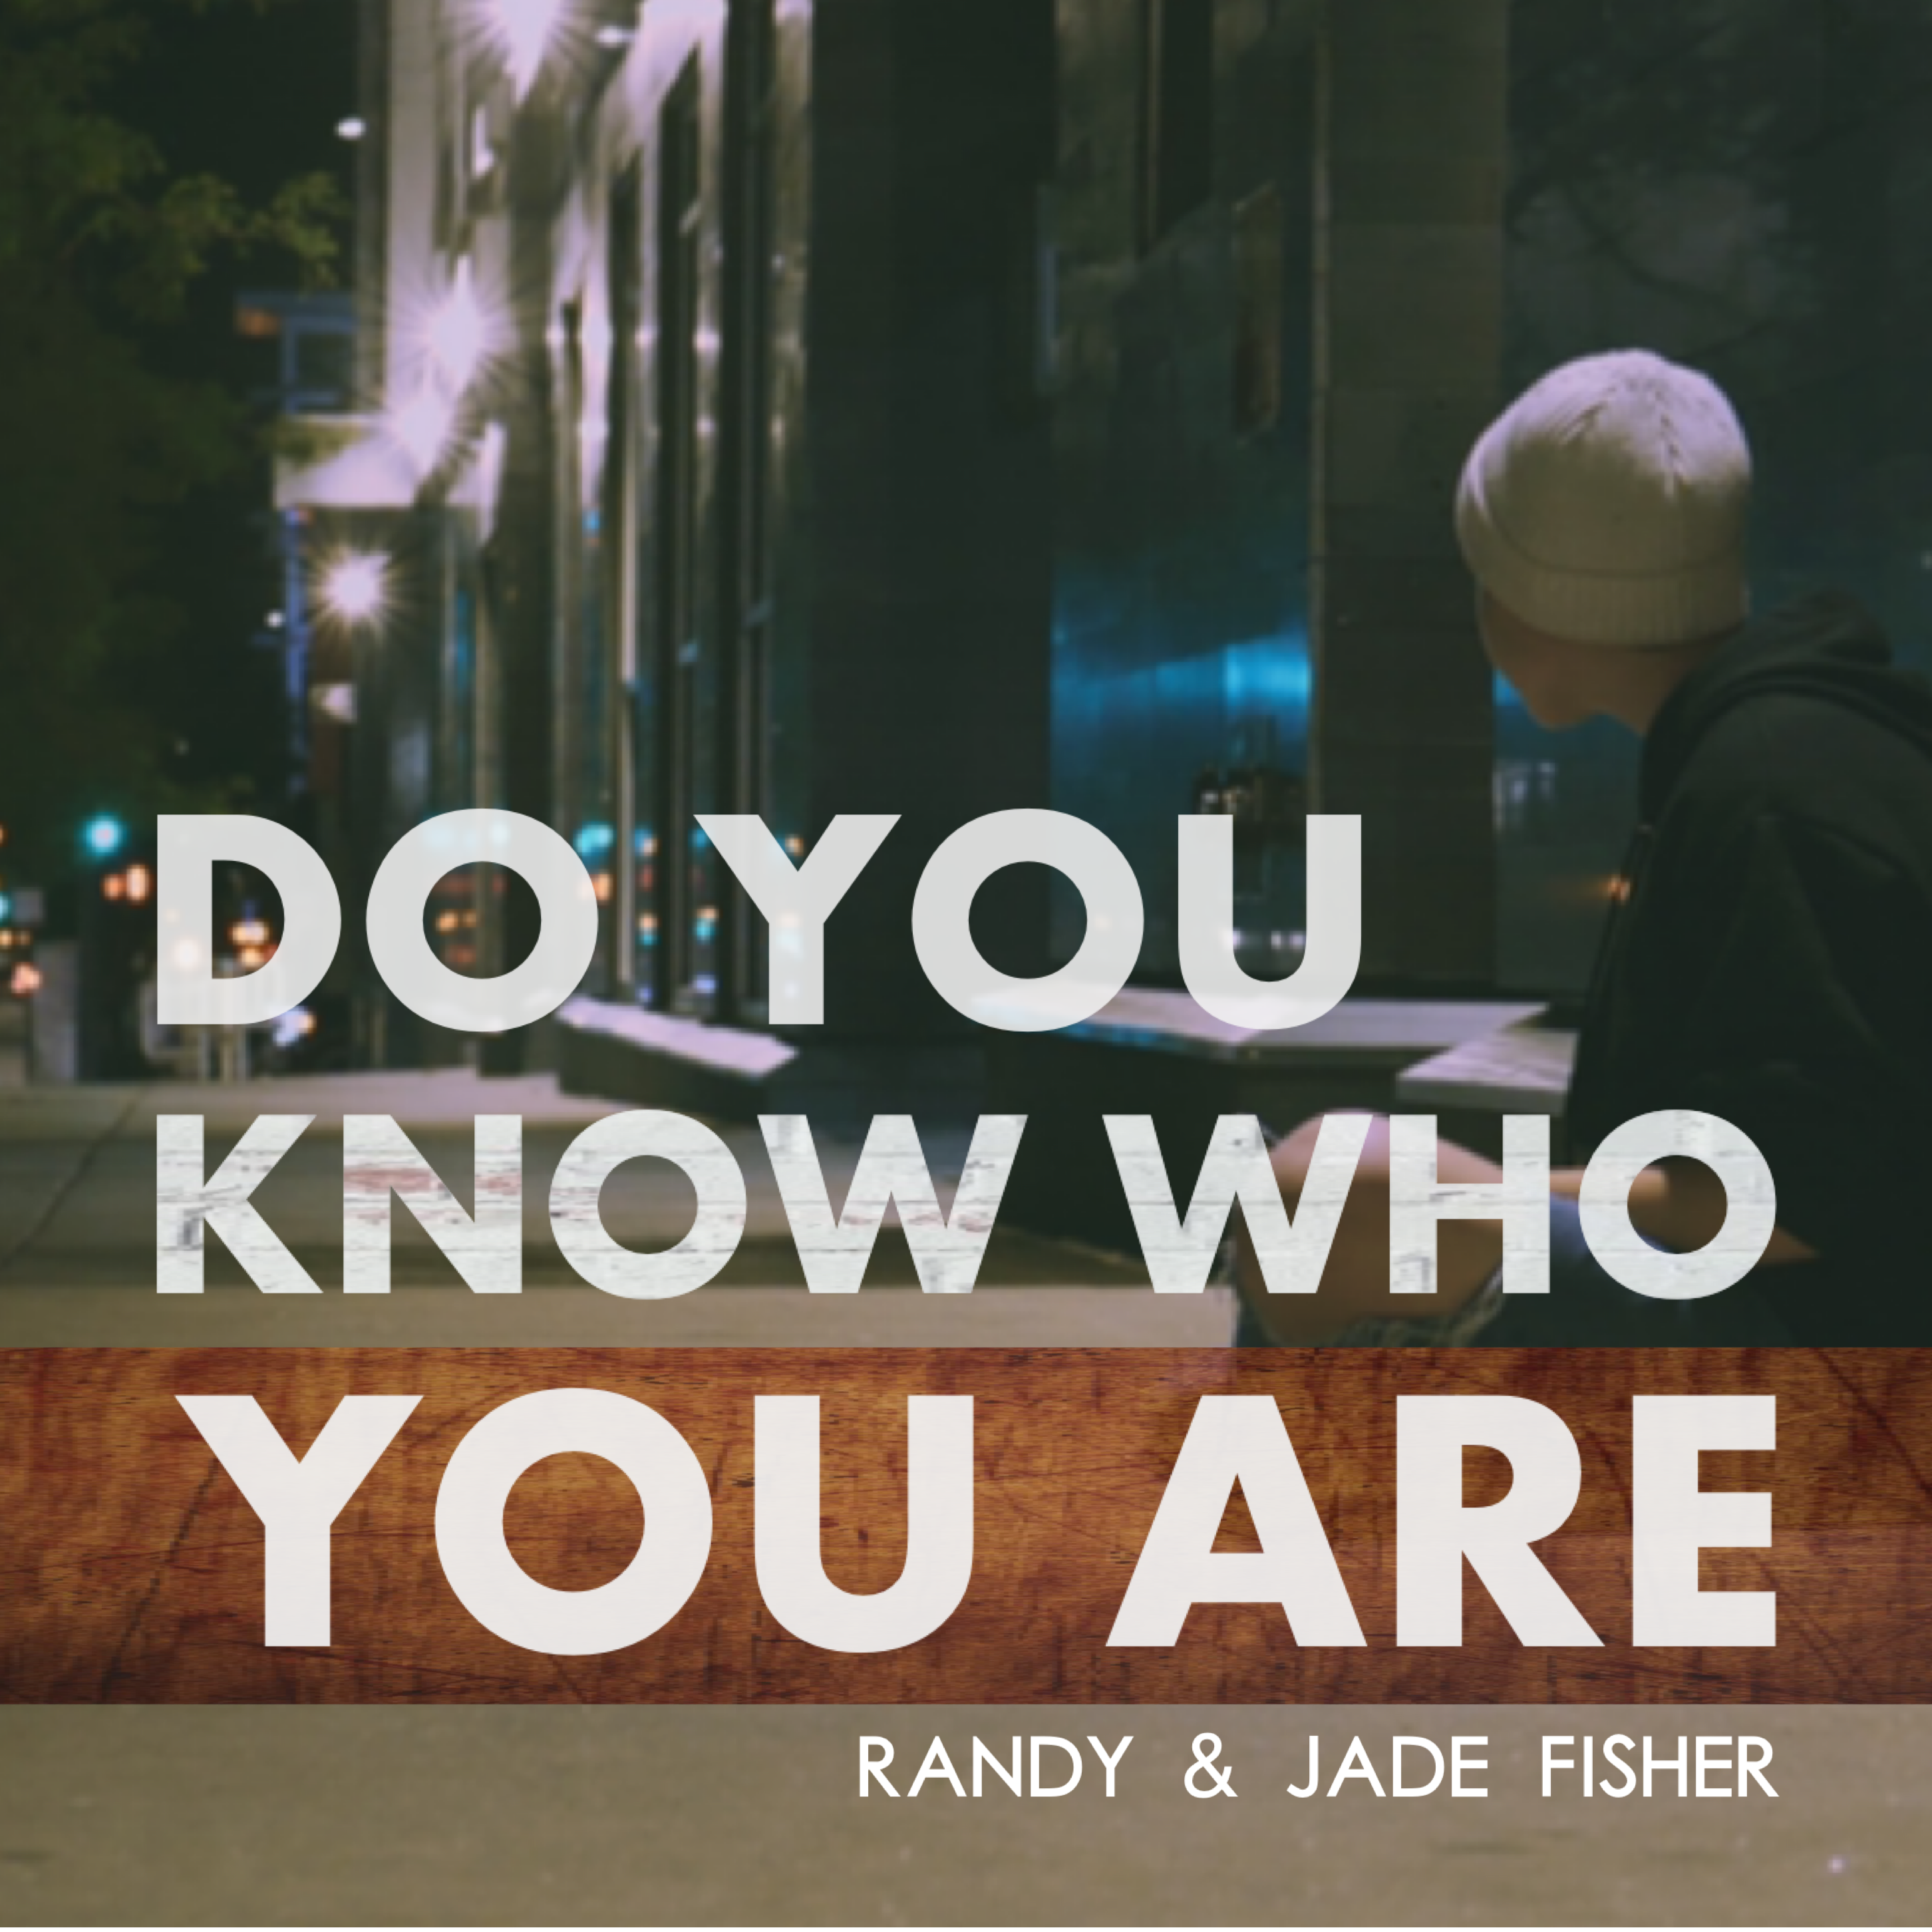 NEW RADIO SINGLE OUT TODAY FROM RANDY AND JADE FISHER